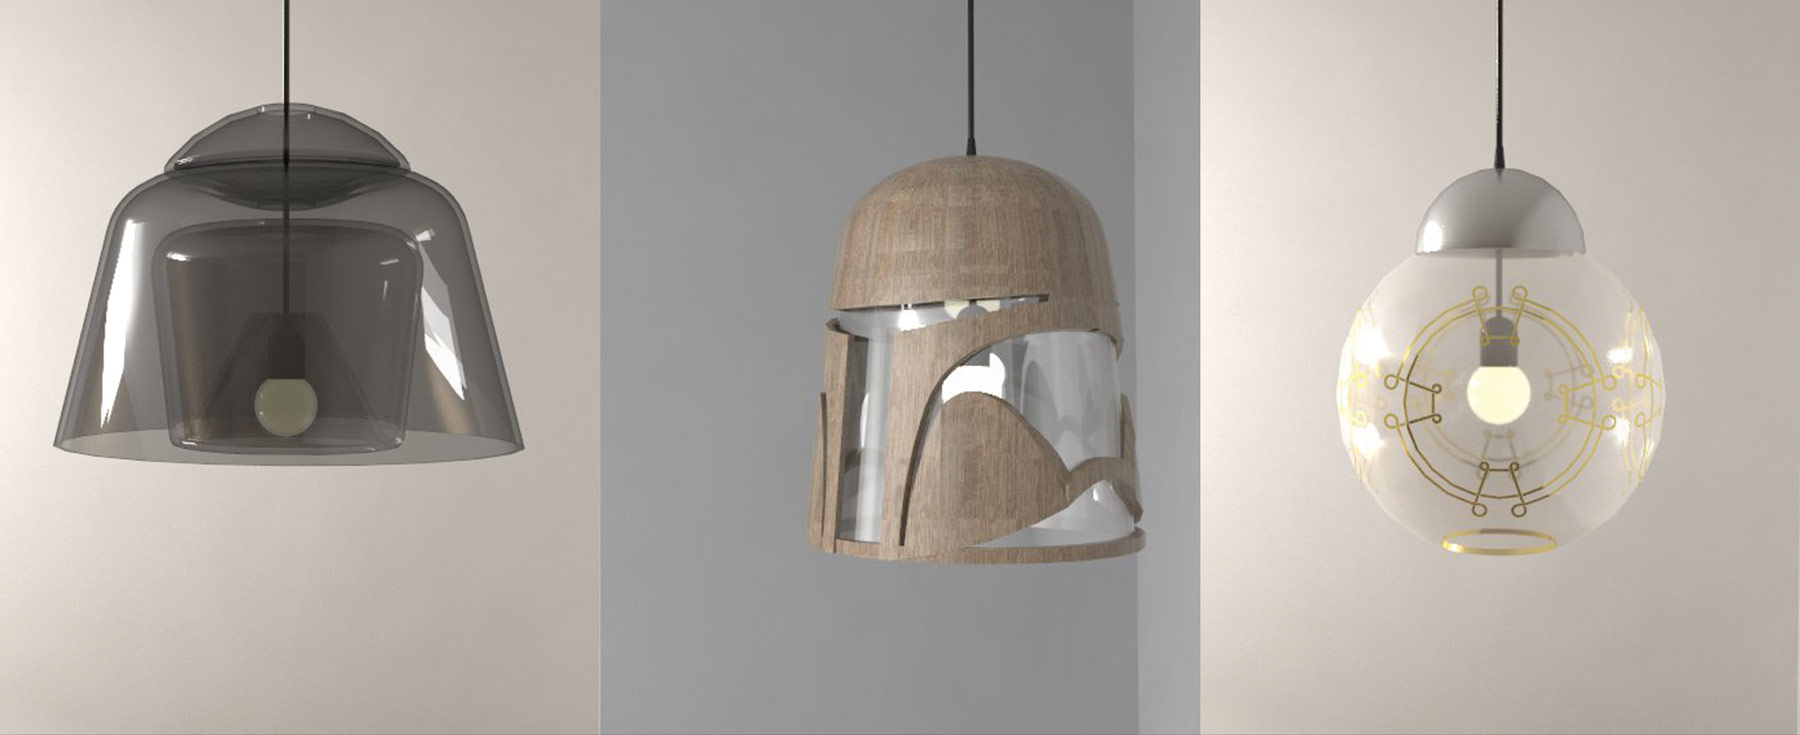 star-wars-lampe-plafond-suedois-design-home